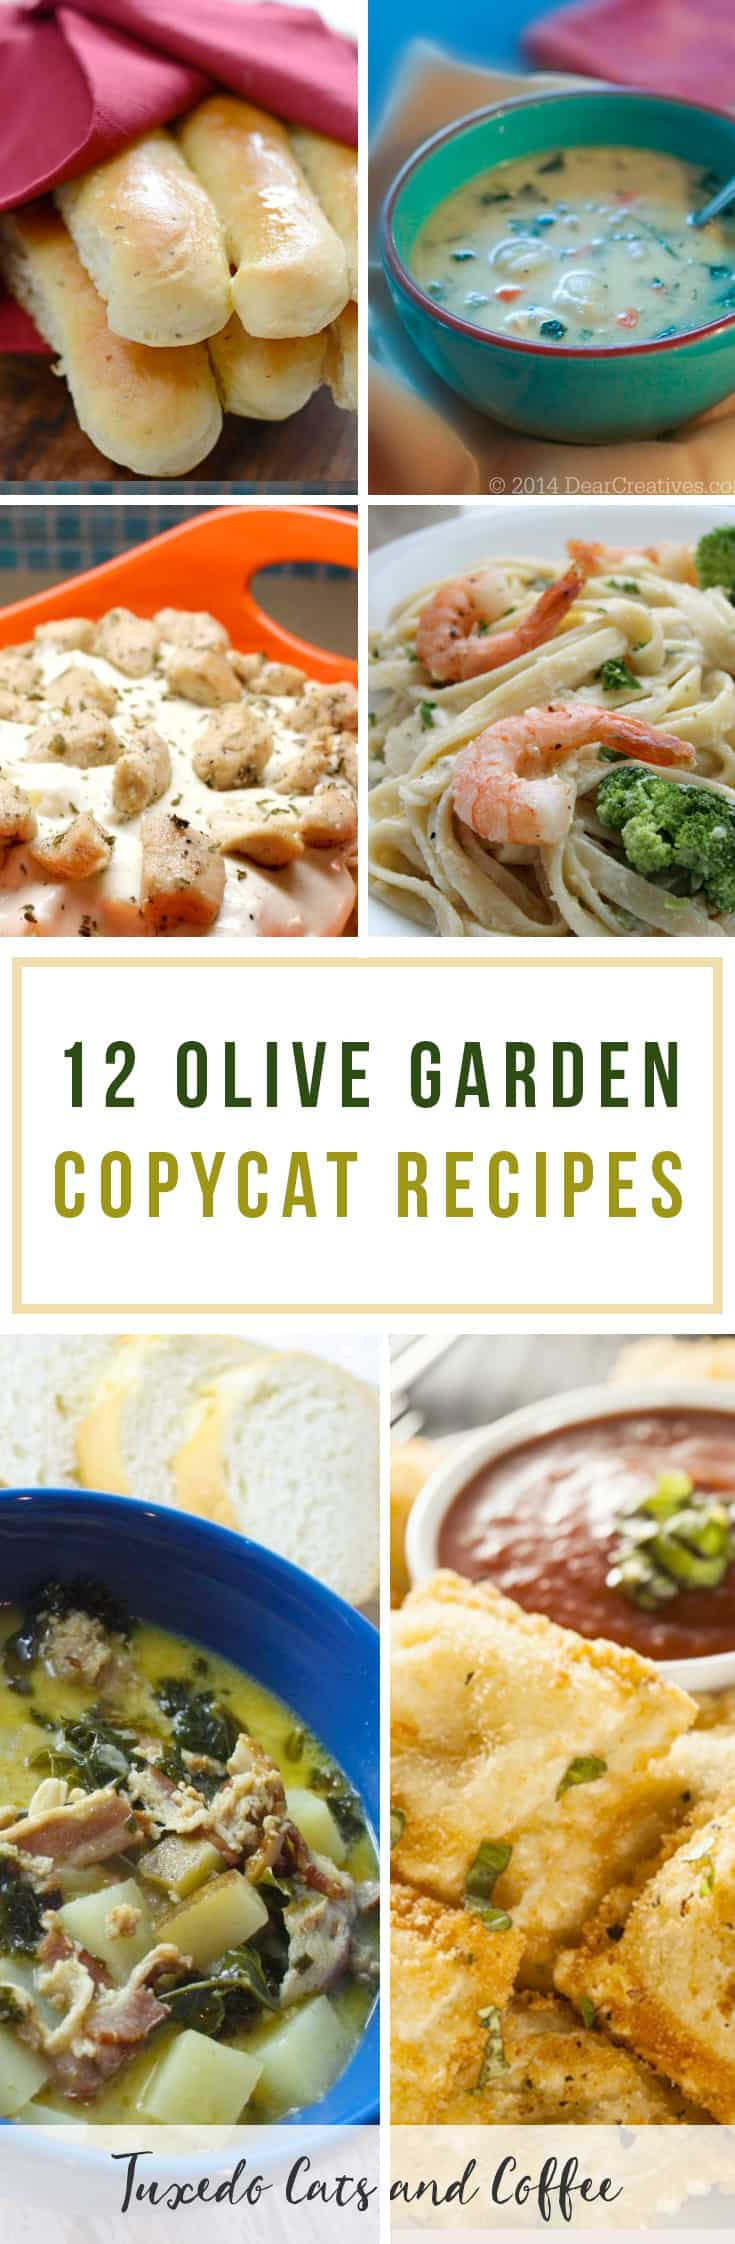 12 Olive Garden Copycat Recipes Tuxedo Cats And Coffee